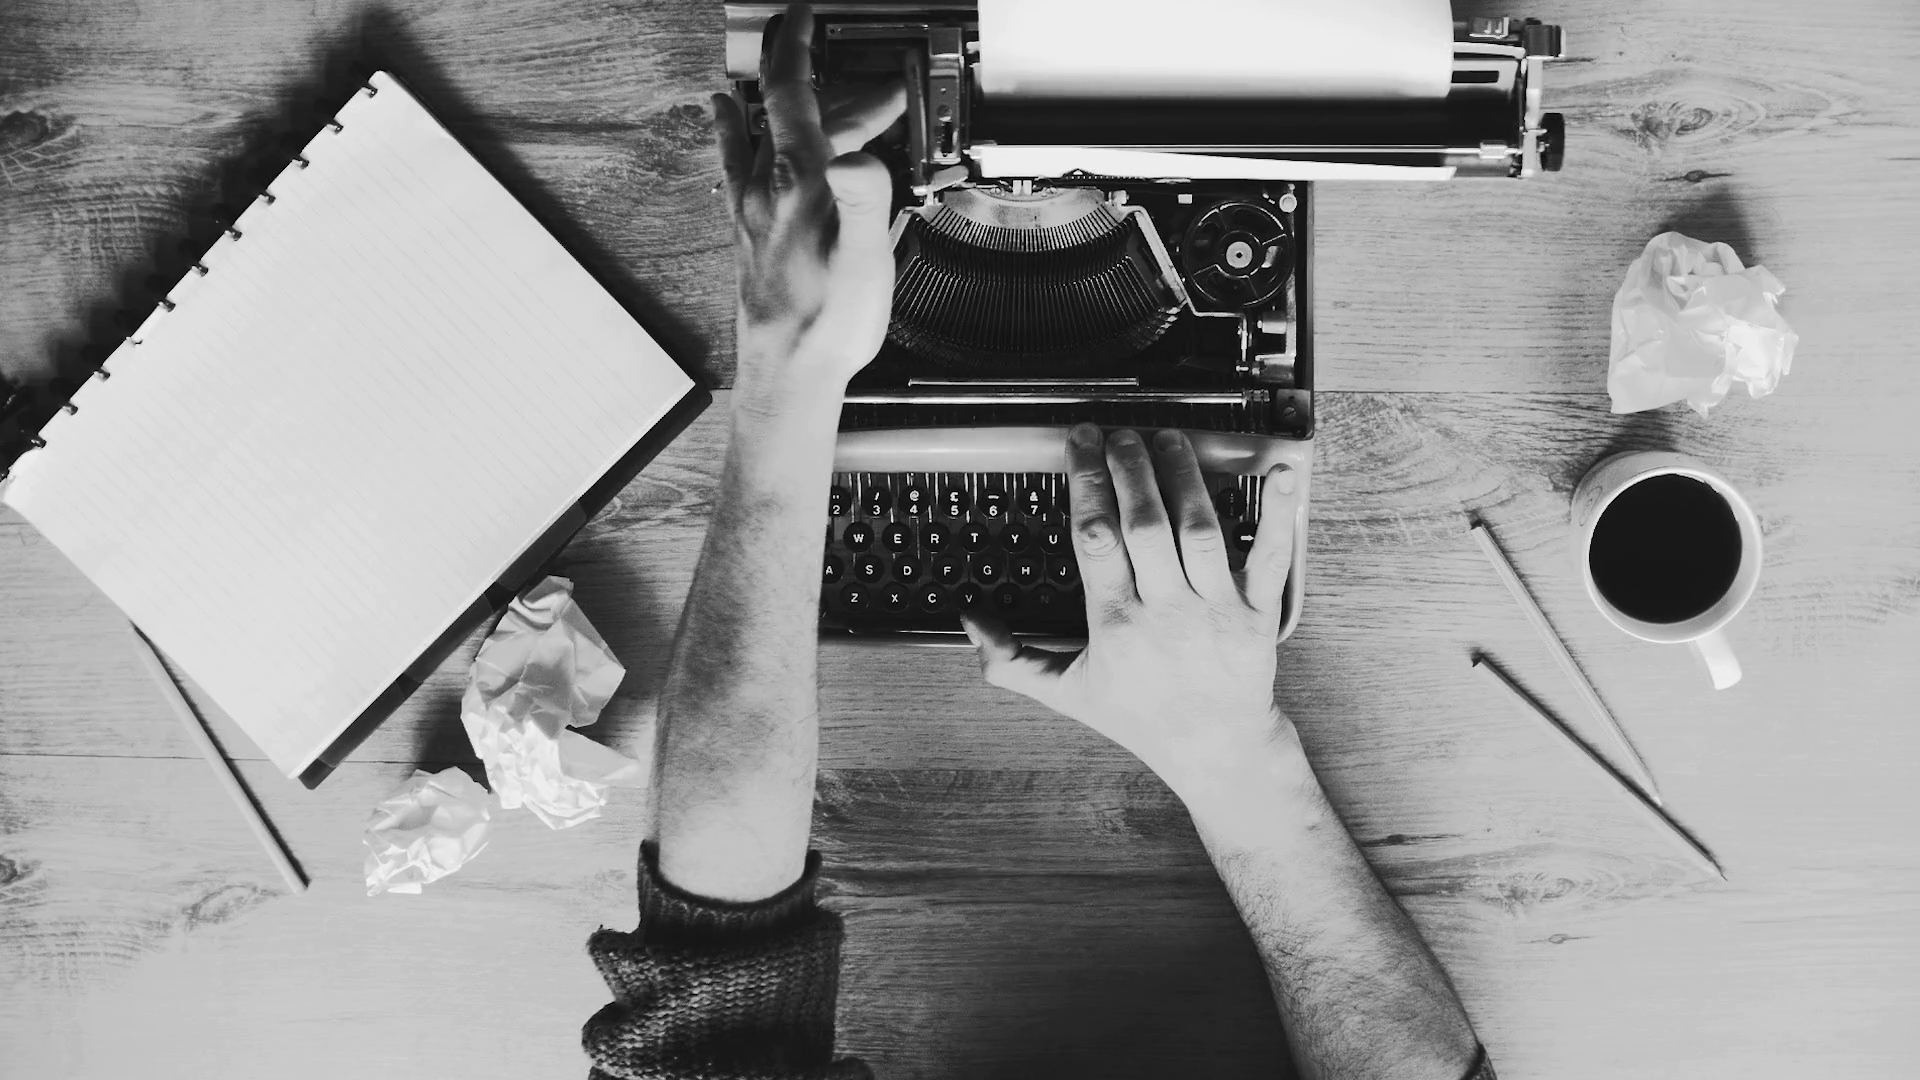 black-and-white-artistic-shot-of-hands-typing-on-a-vintage-typewriter-space-for-writing-film-script-book-or-letter_b5ca8rr_x_thumbnail-full01.png